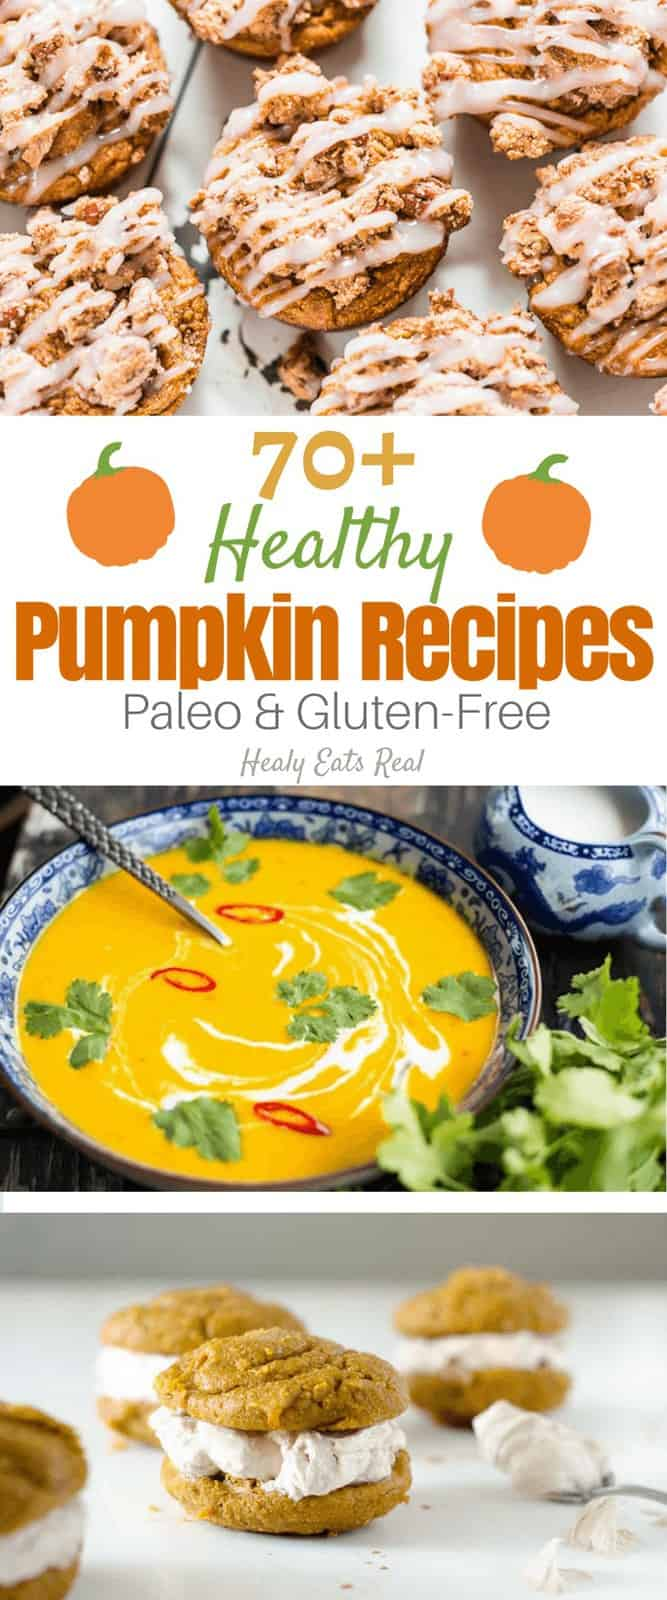 70+ Paleo Pumpkin Recipes (Gluten-Free)